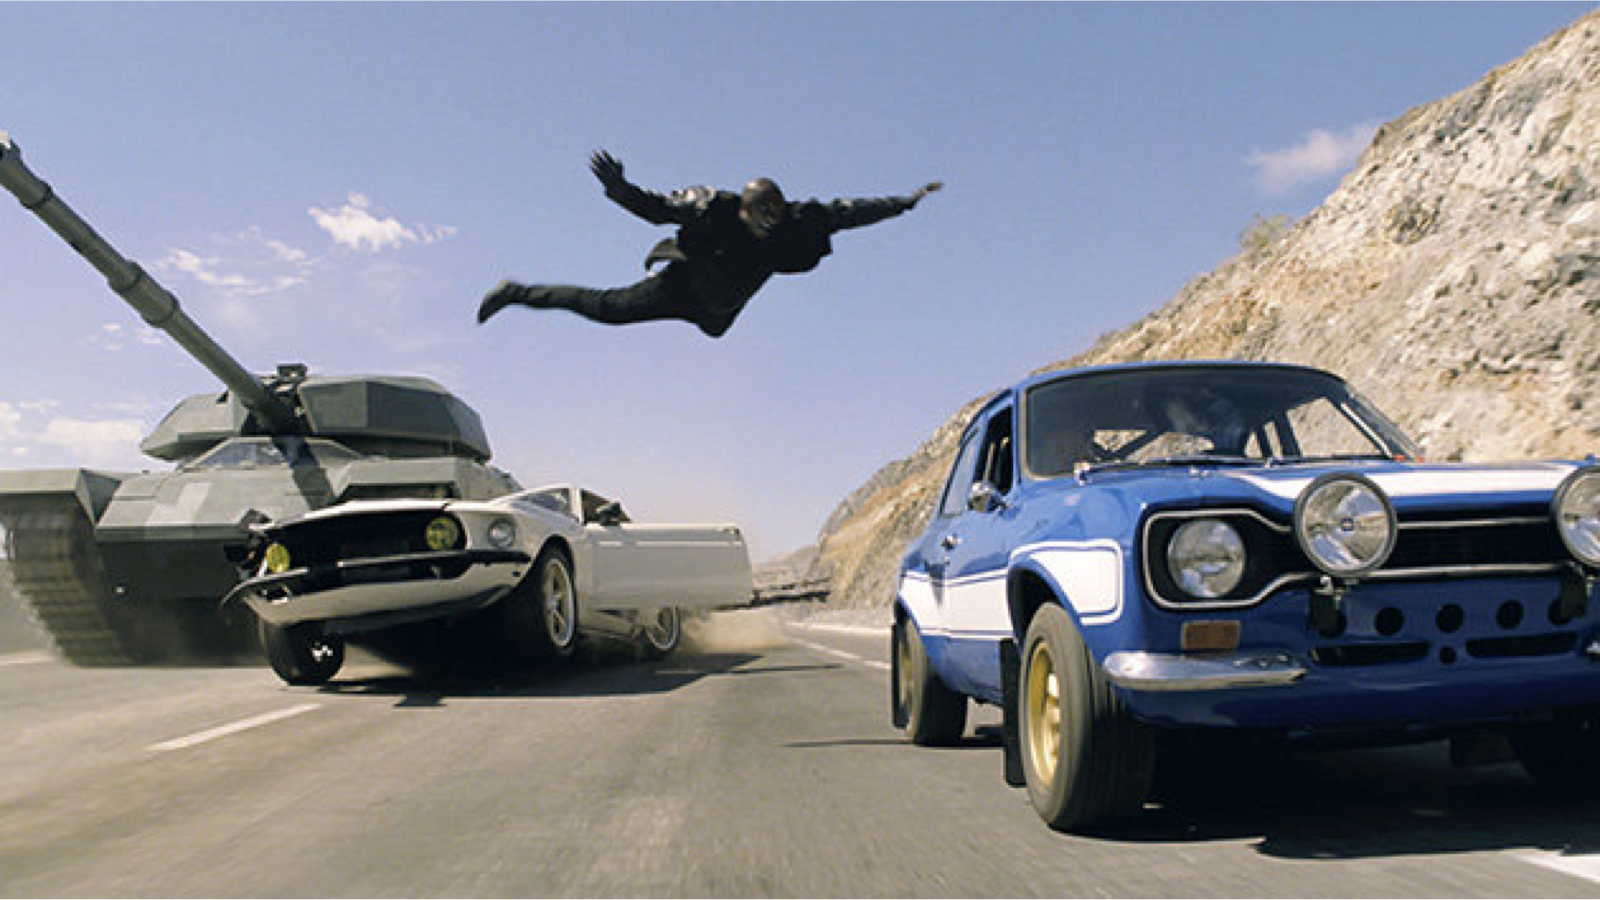 Fast and Furious 6 (2013) de Justin Lin - Selenie